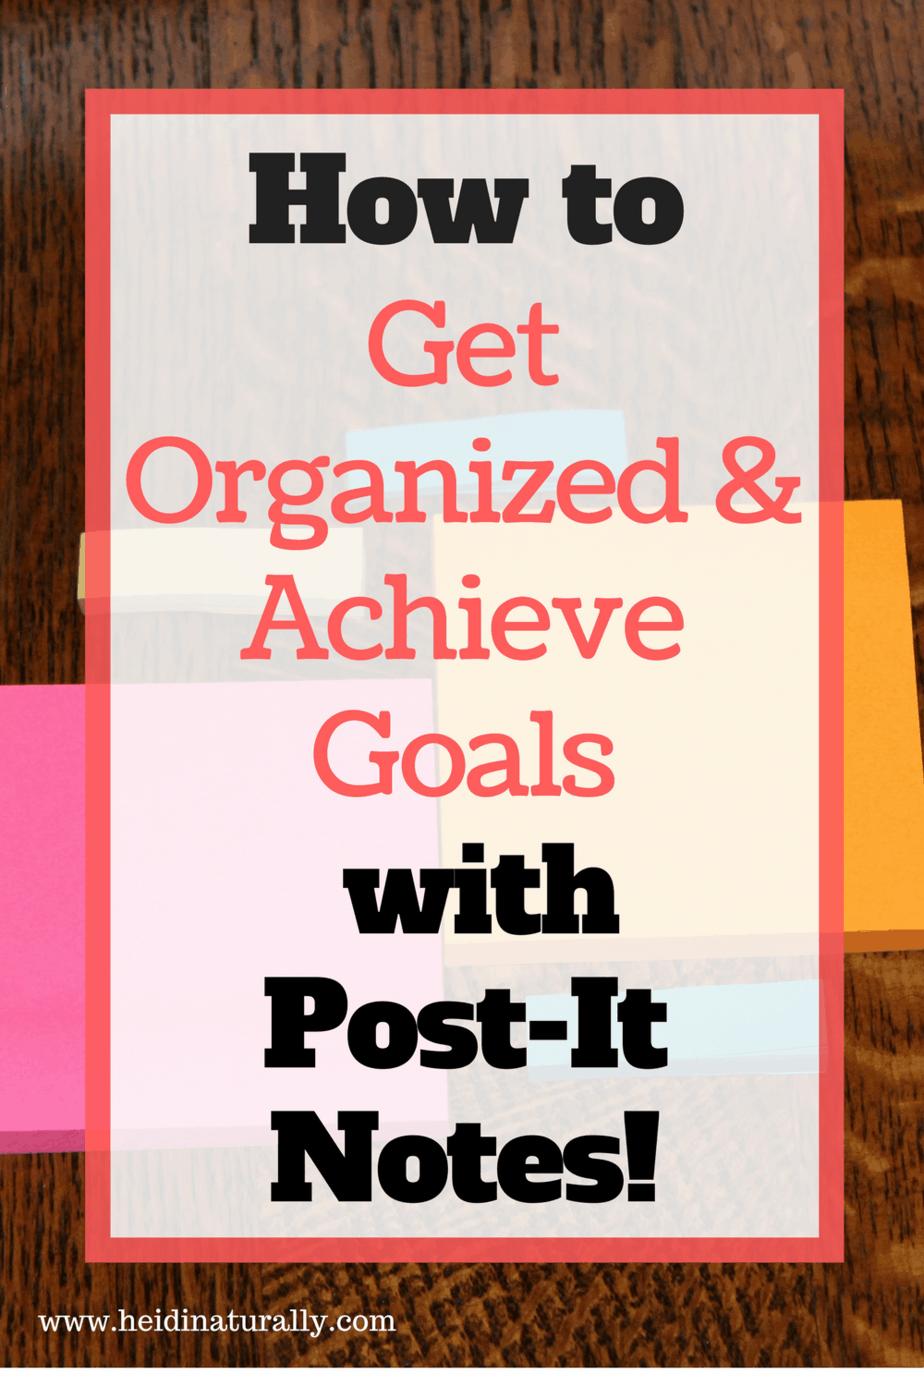 Find out how to organize your day, week, & month and achieve goals using Post-It notes. Learn the easy way to organized & accomplish tasks.